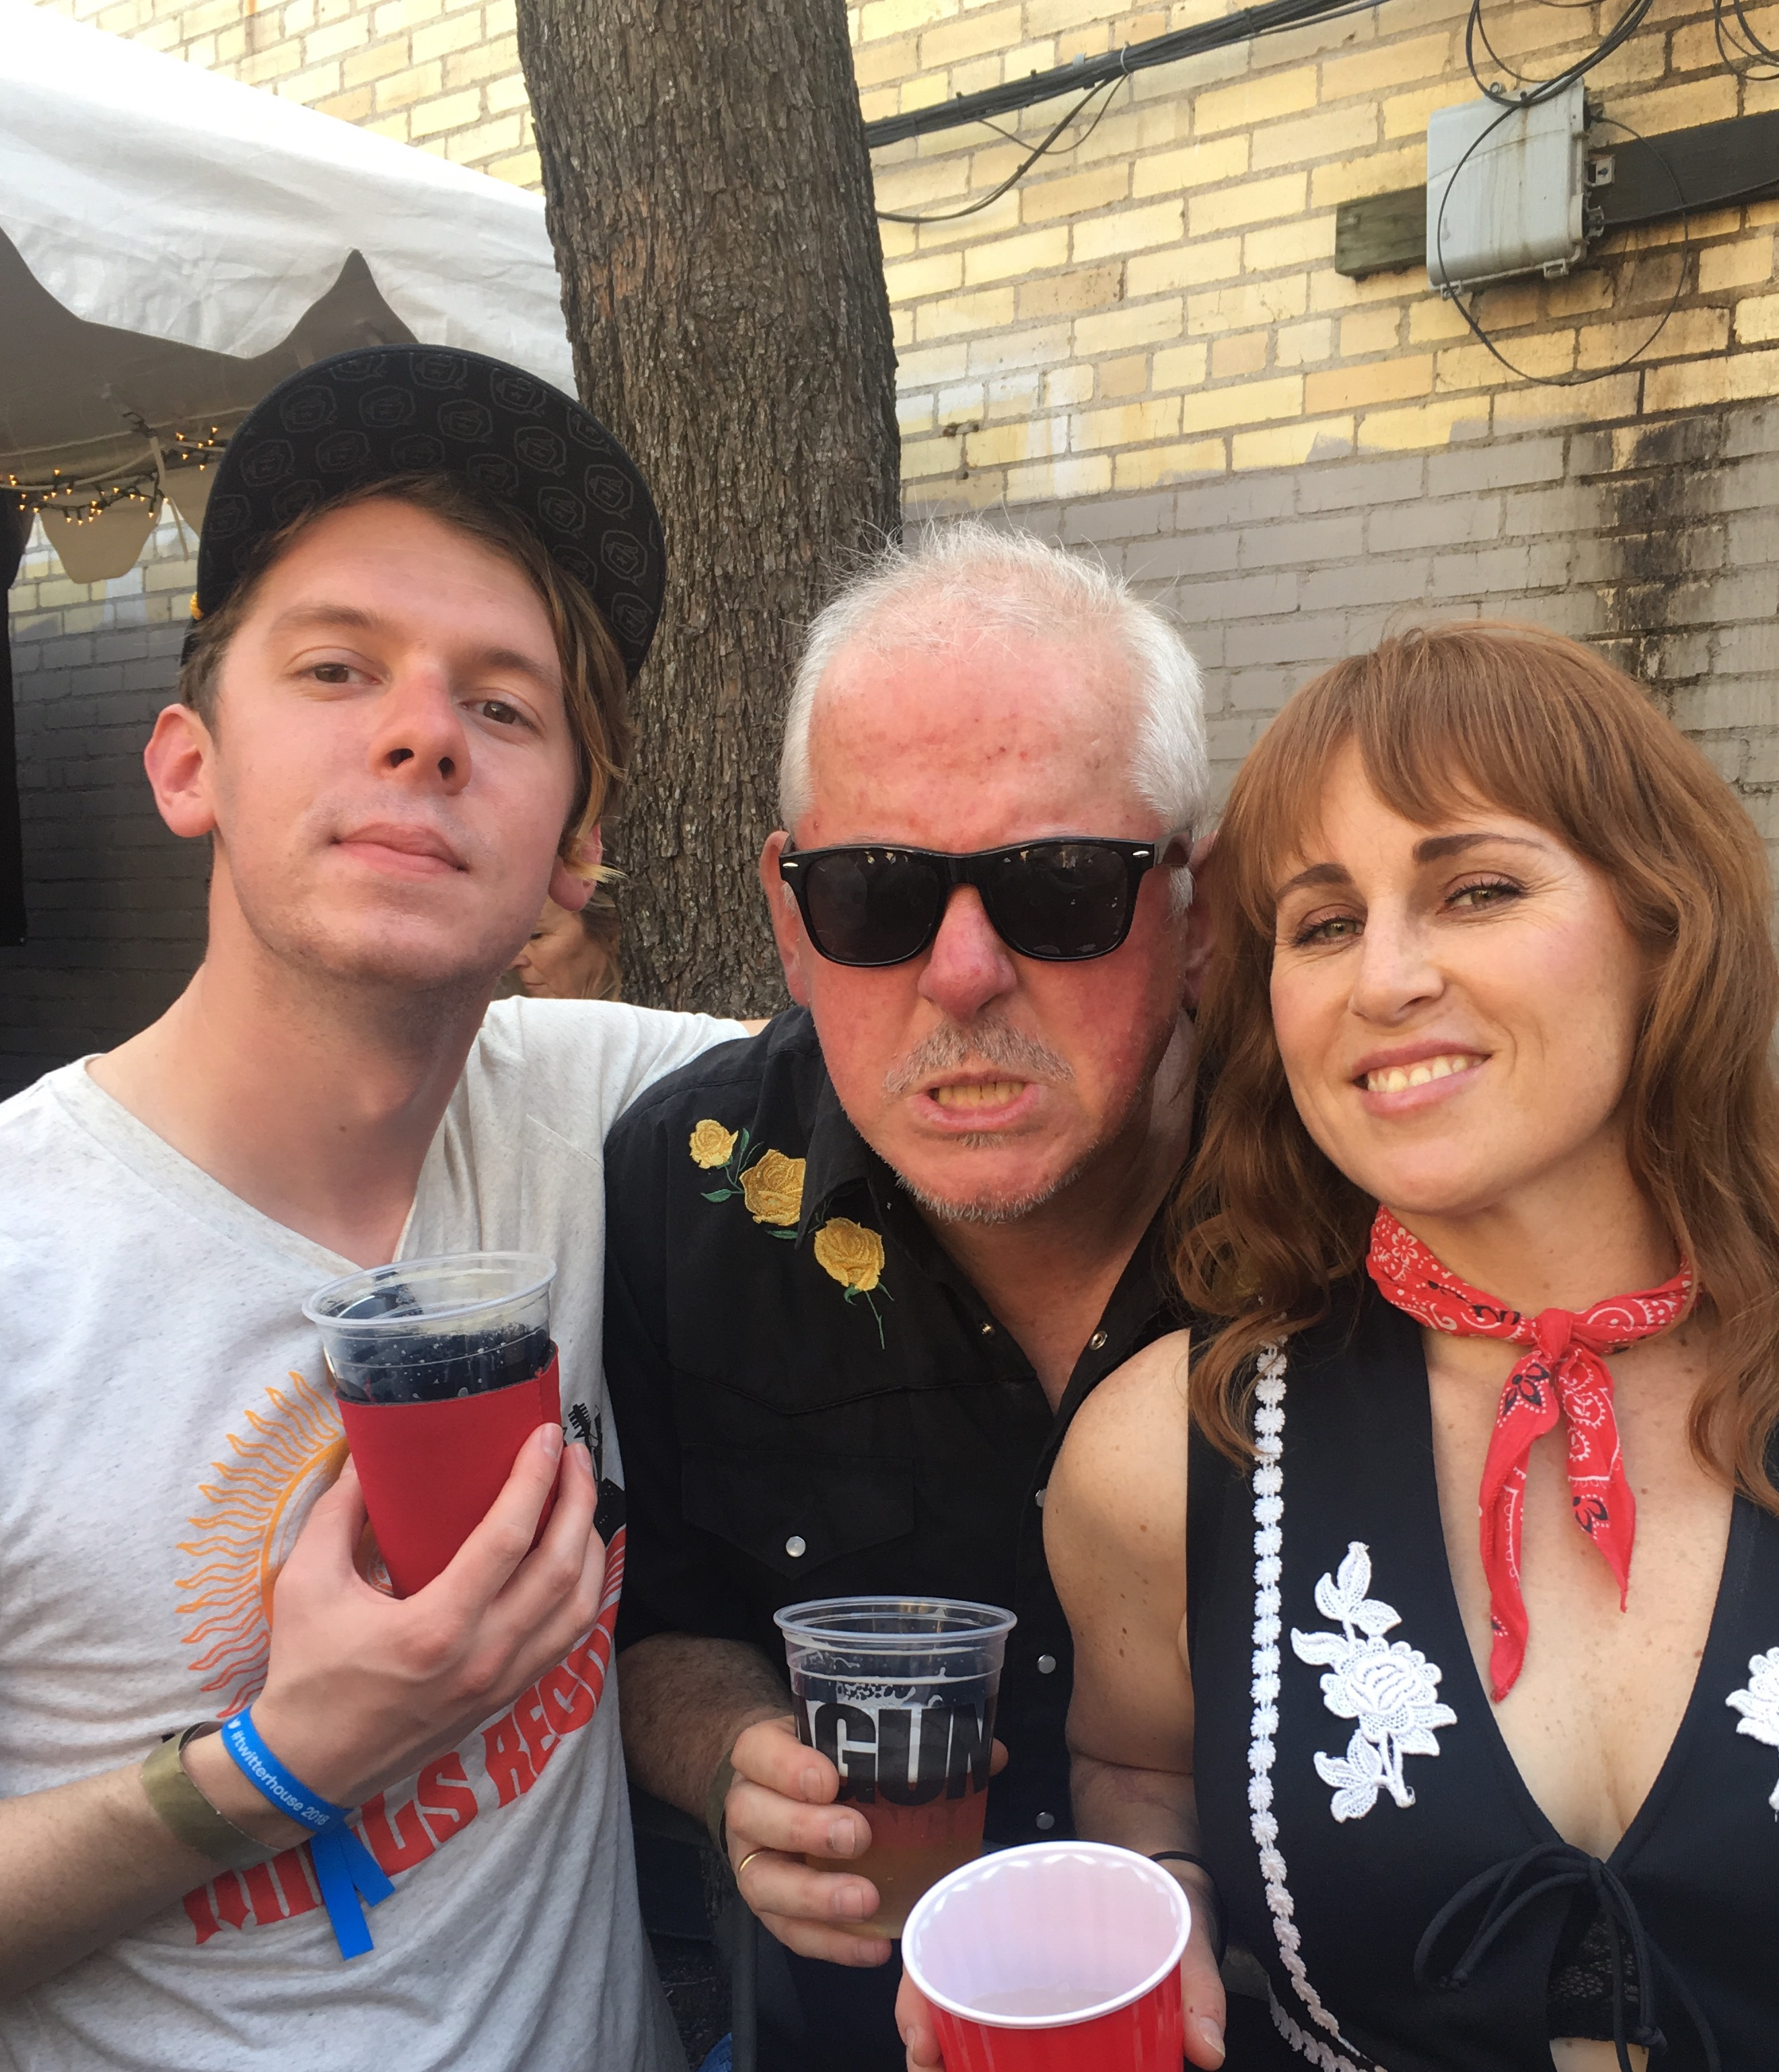 Jon Langford Ruby Boots Bloodshot Yard Dog SXSW 2018